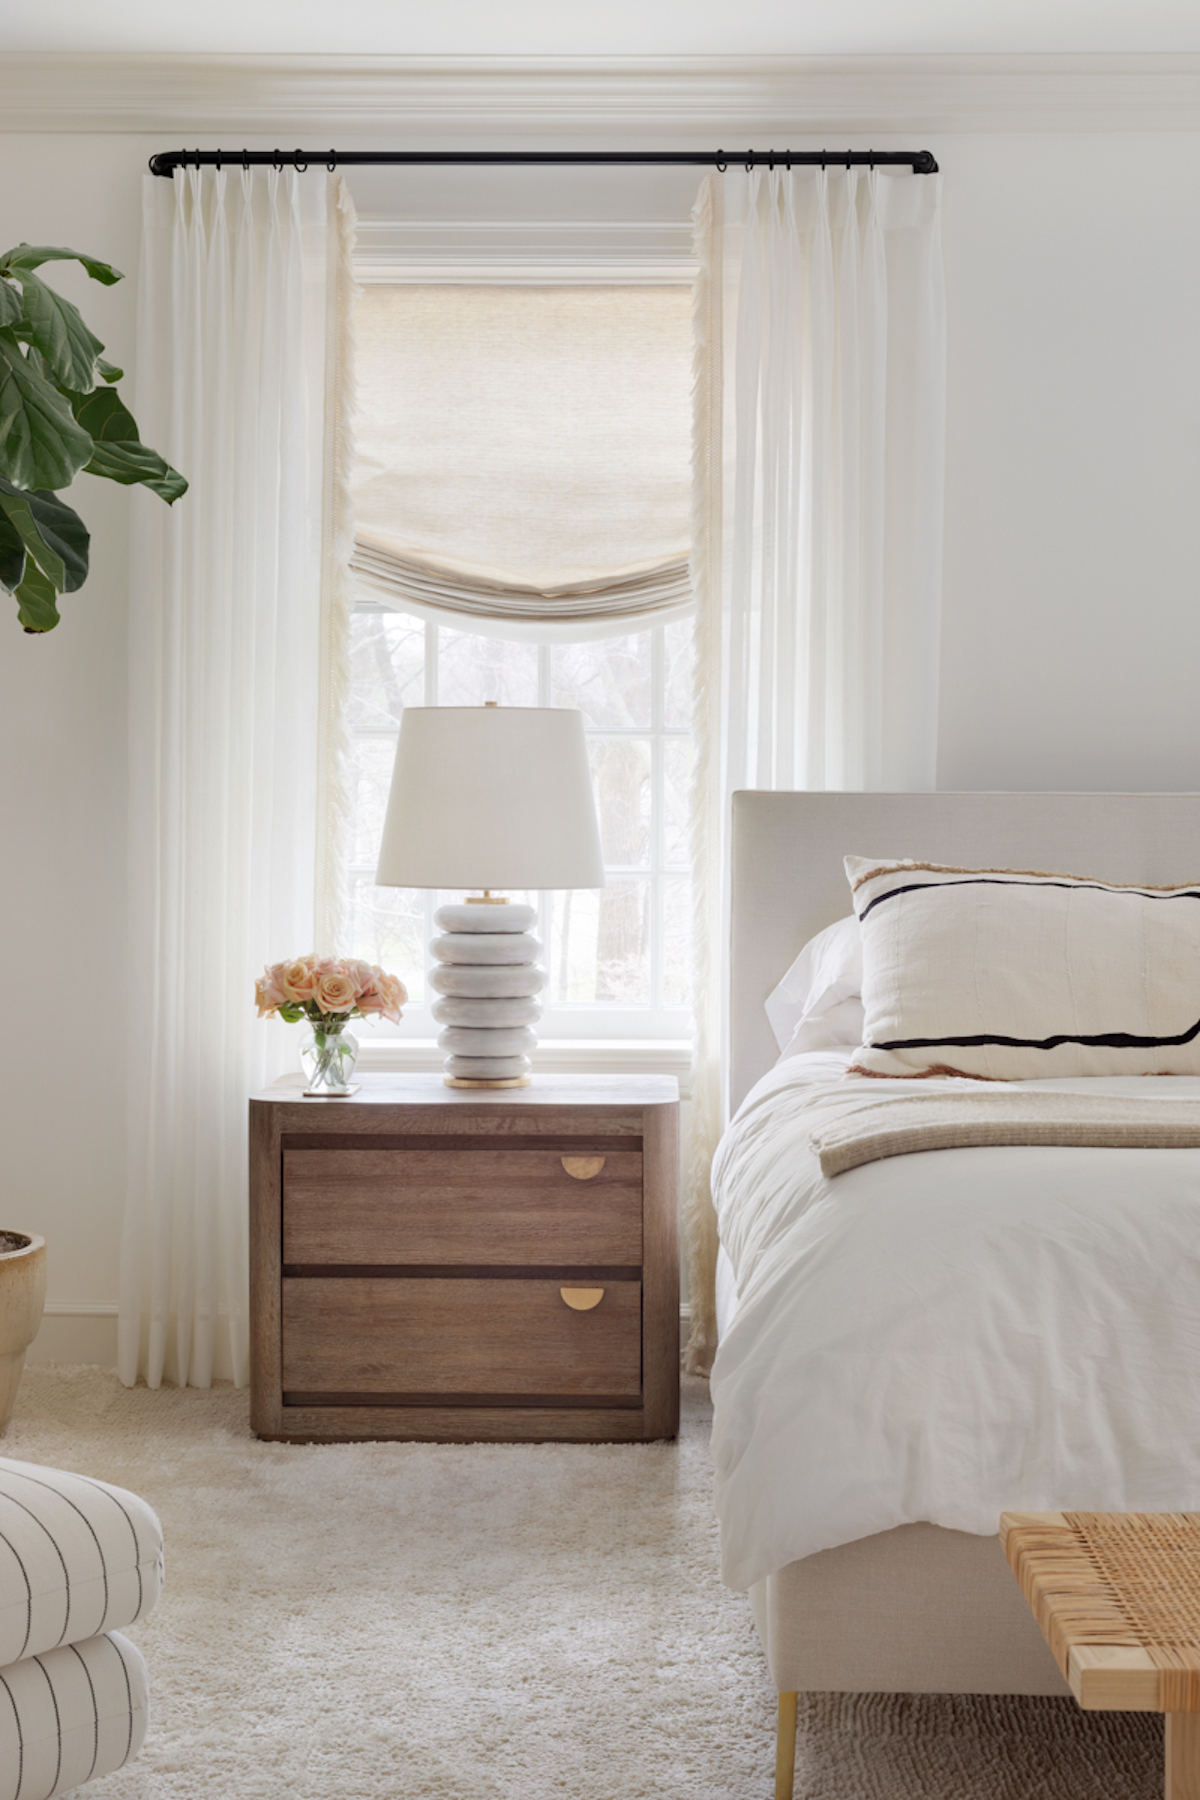 Best Warm White Paint Colors - Benjamin Moore - IMAGE: by Emily Sidoti, Design: Lauren Johnson Interiors via Haven feat. paint color 'Simply White' from Benjamin Moore